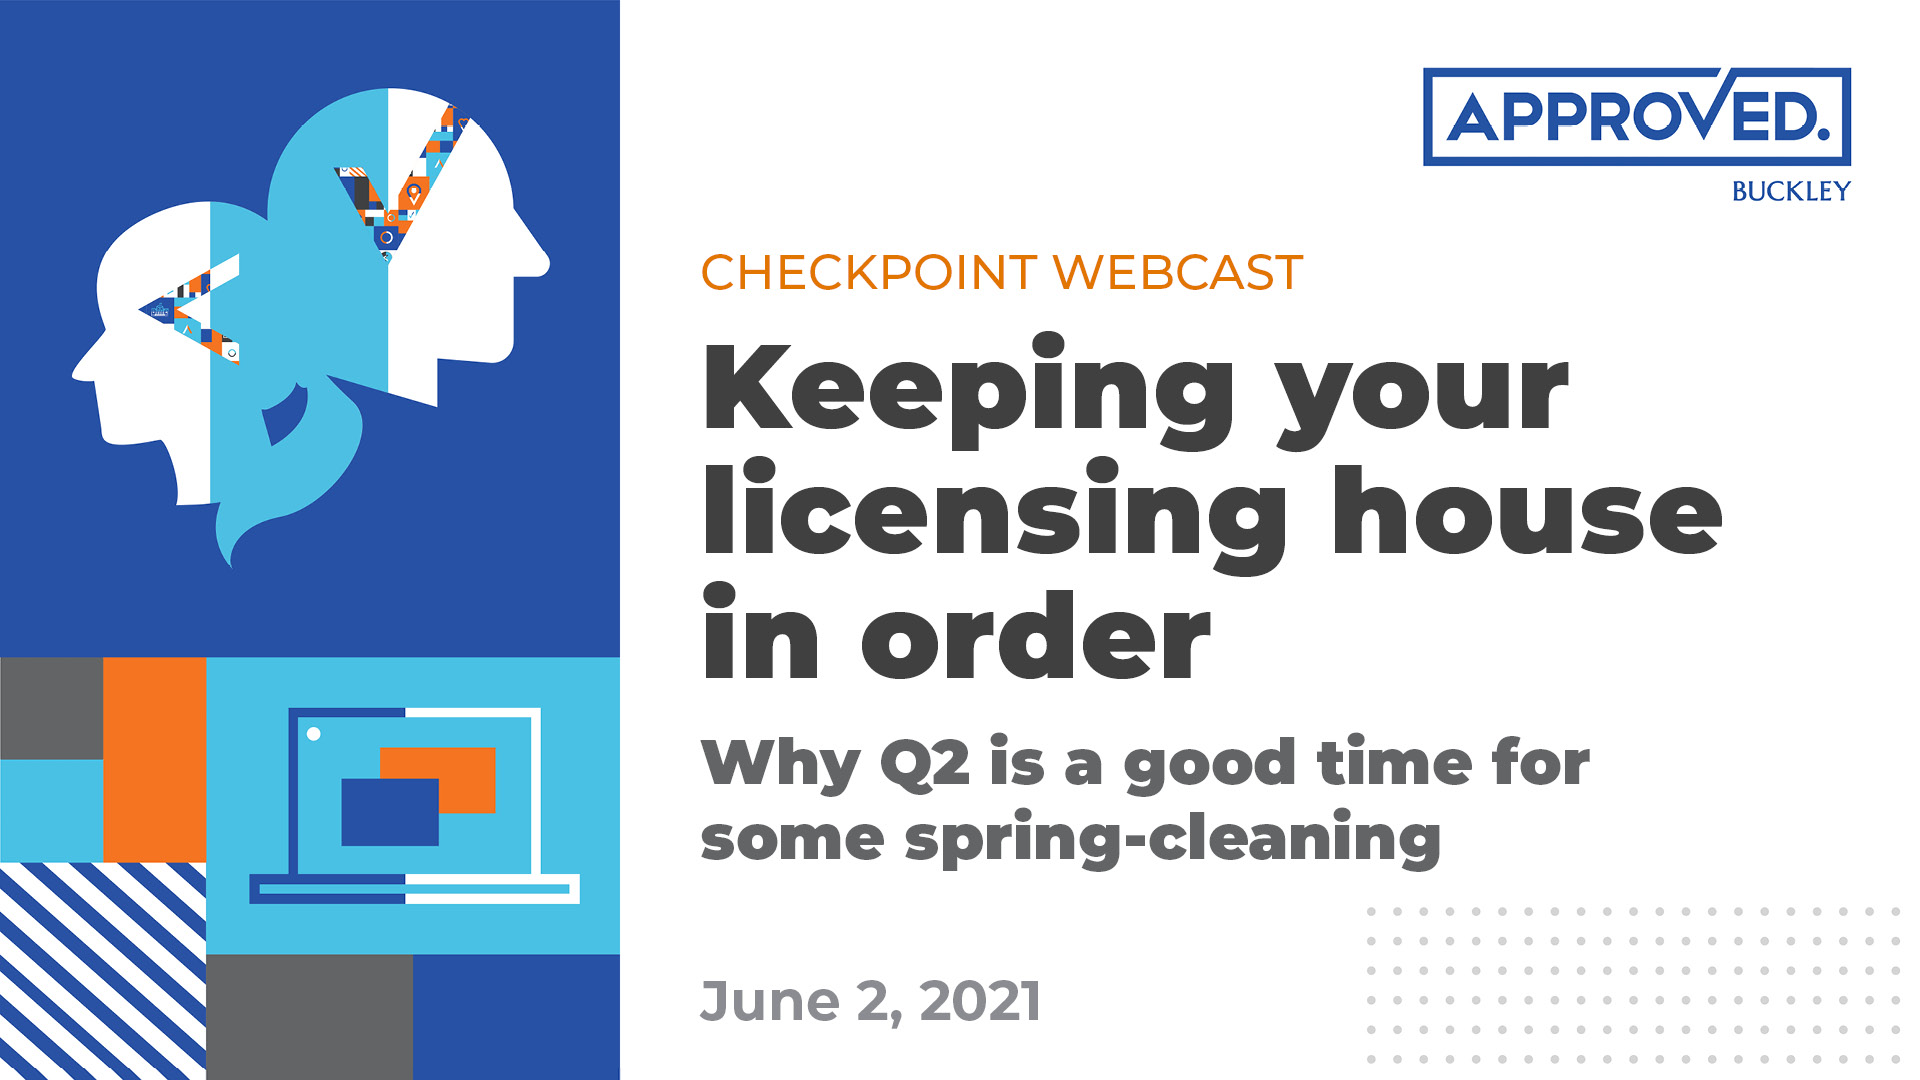 Checkpoint Webcast: Keeping you licensing house in order